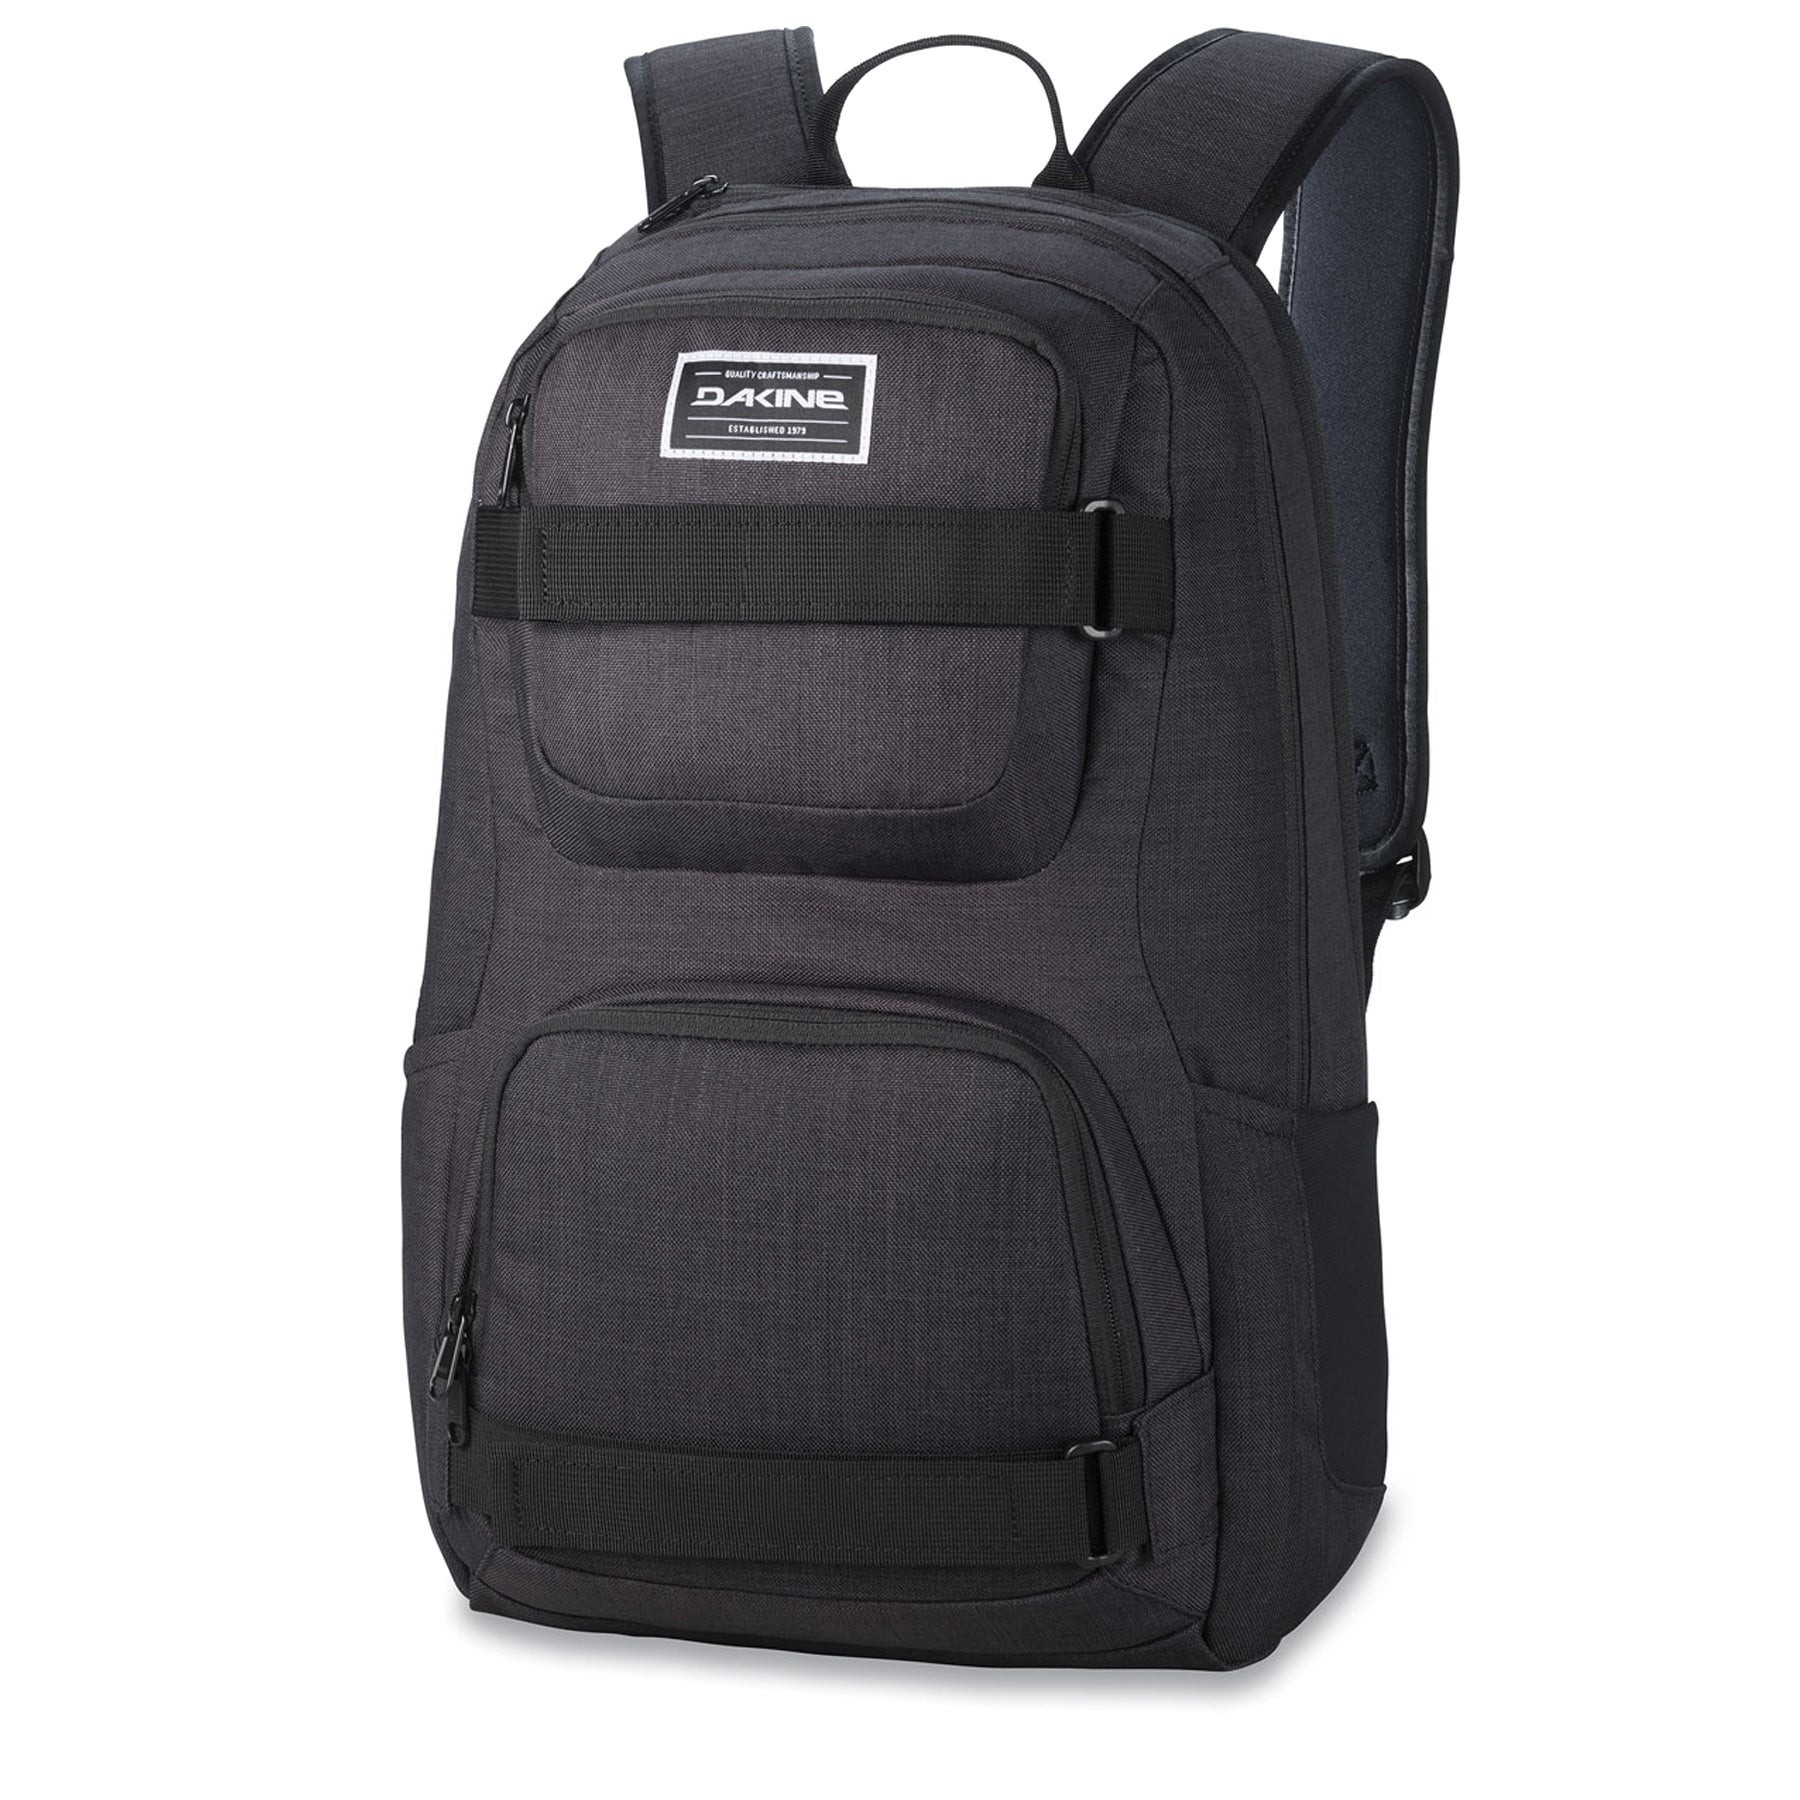 Dakine Duel 26L Laptop Backpack - Black